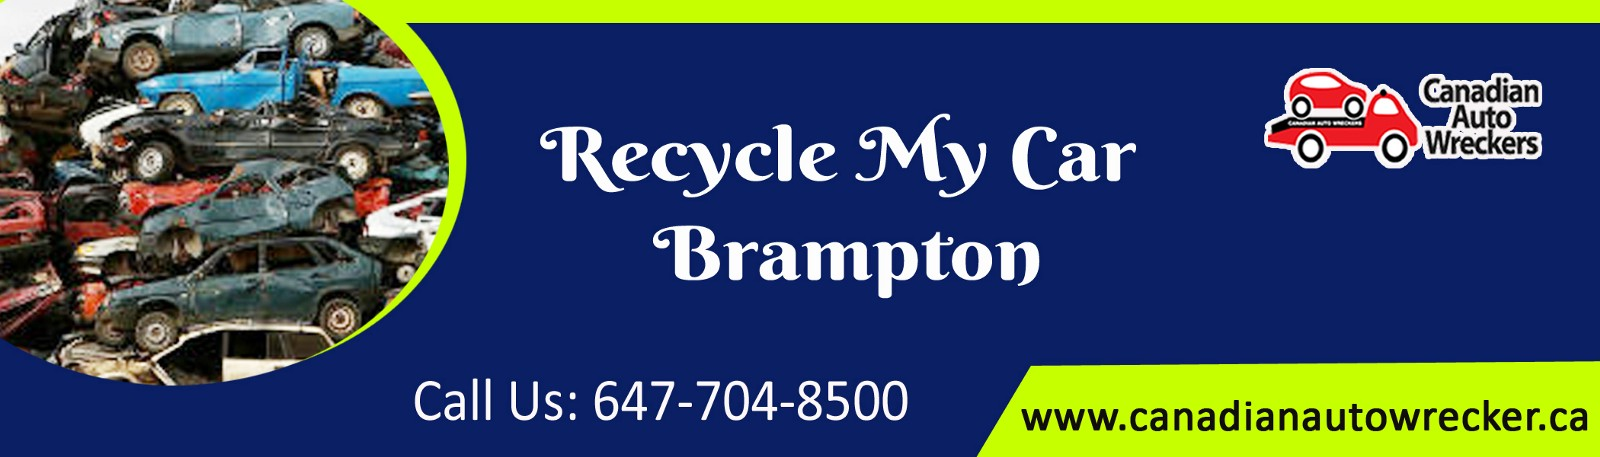 Where to Recycle My Car Brampton to make reuse of my car particles?